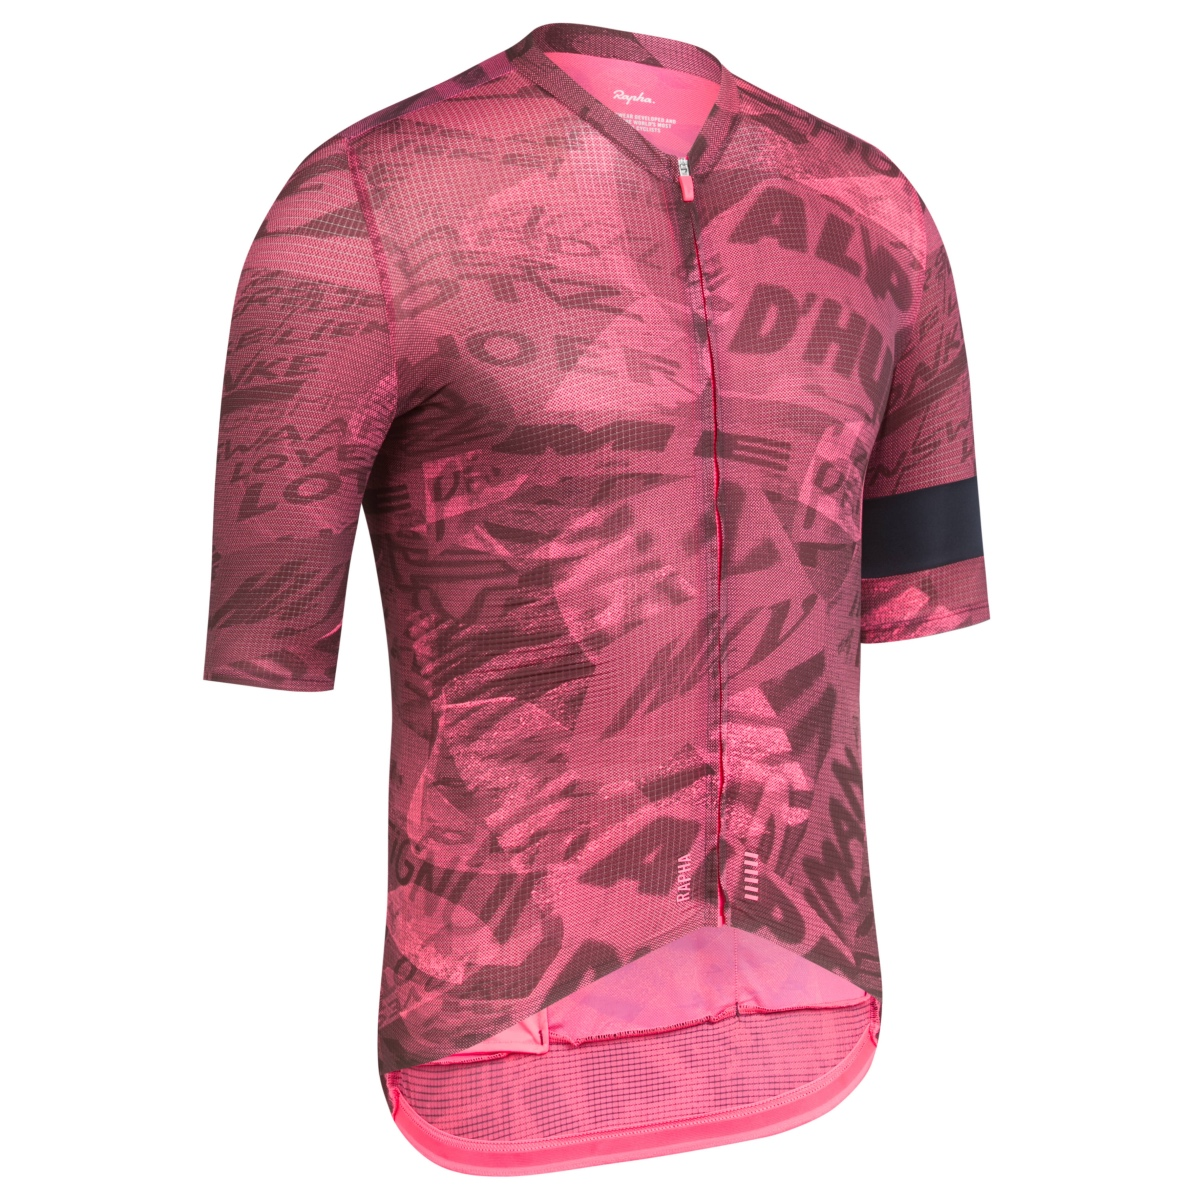 Rapha Graffiti Collection